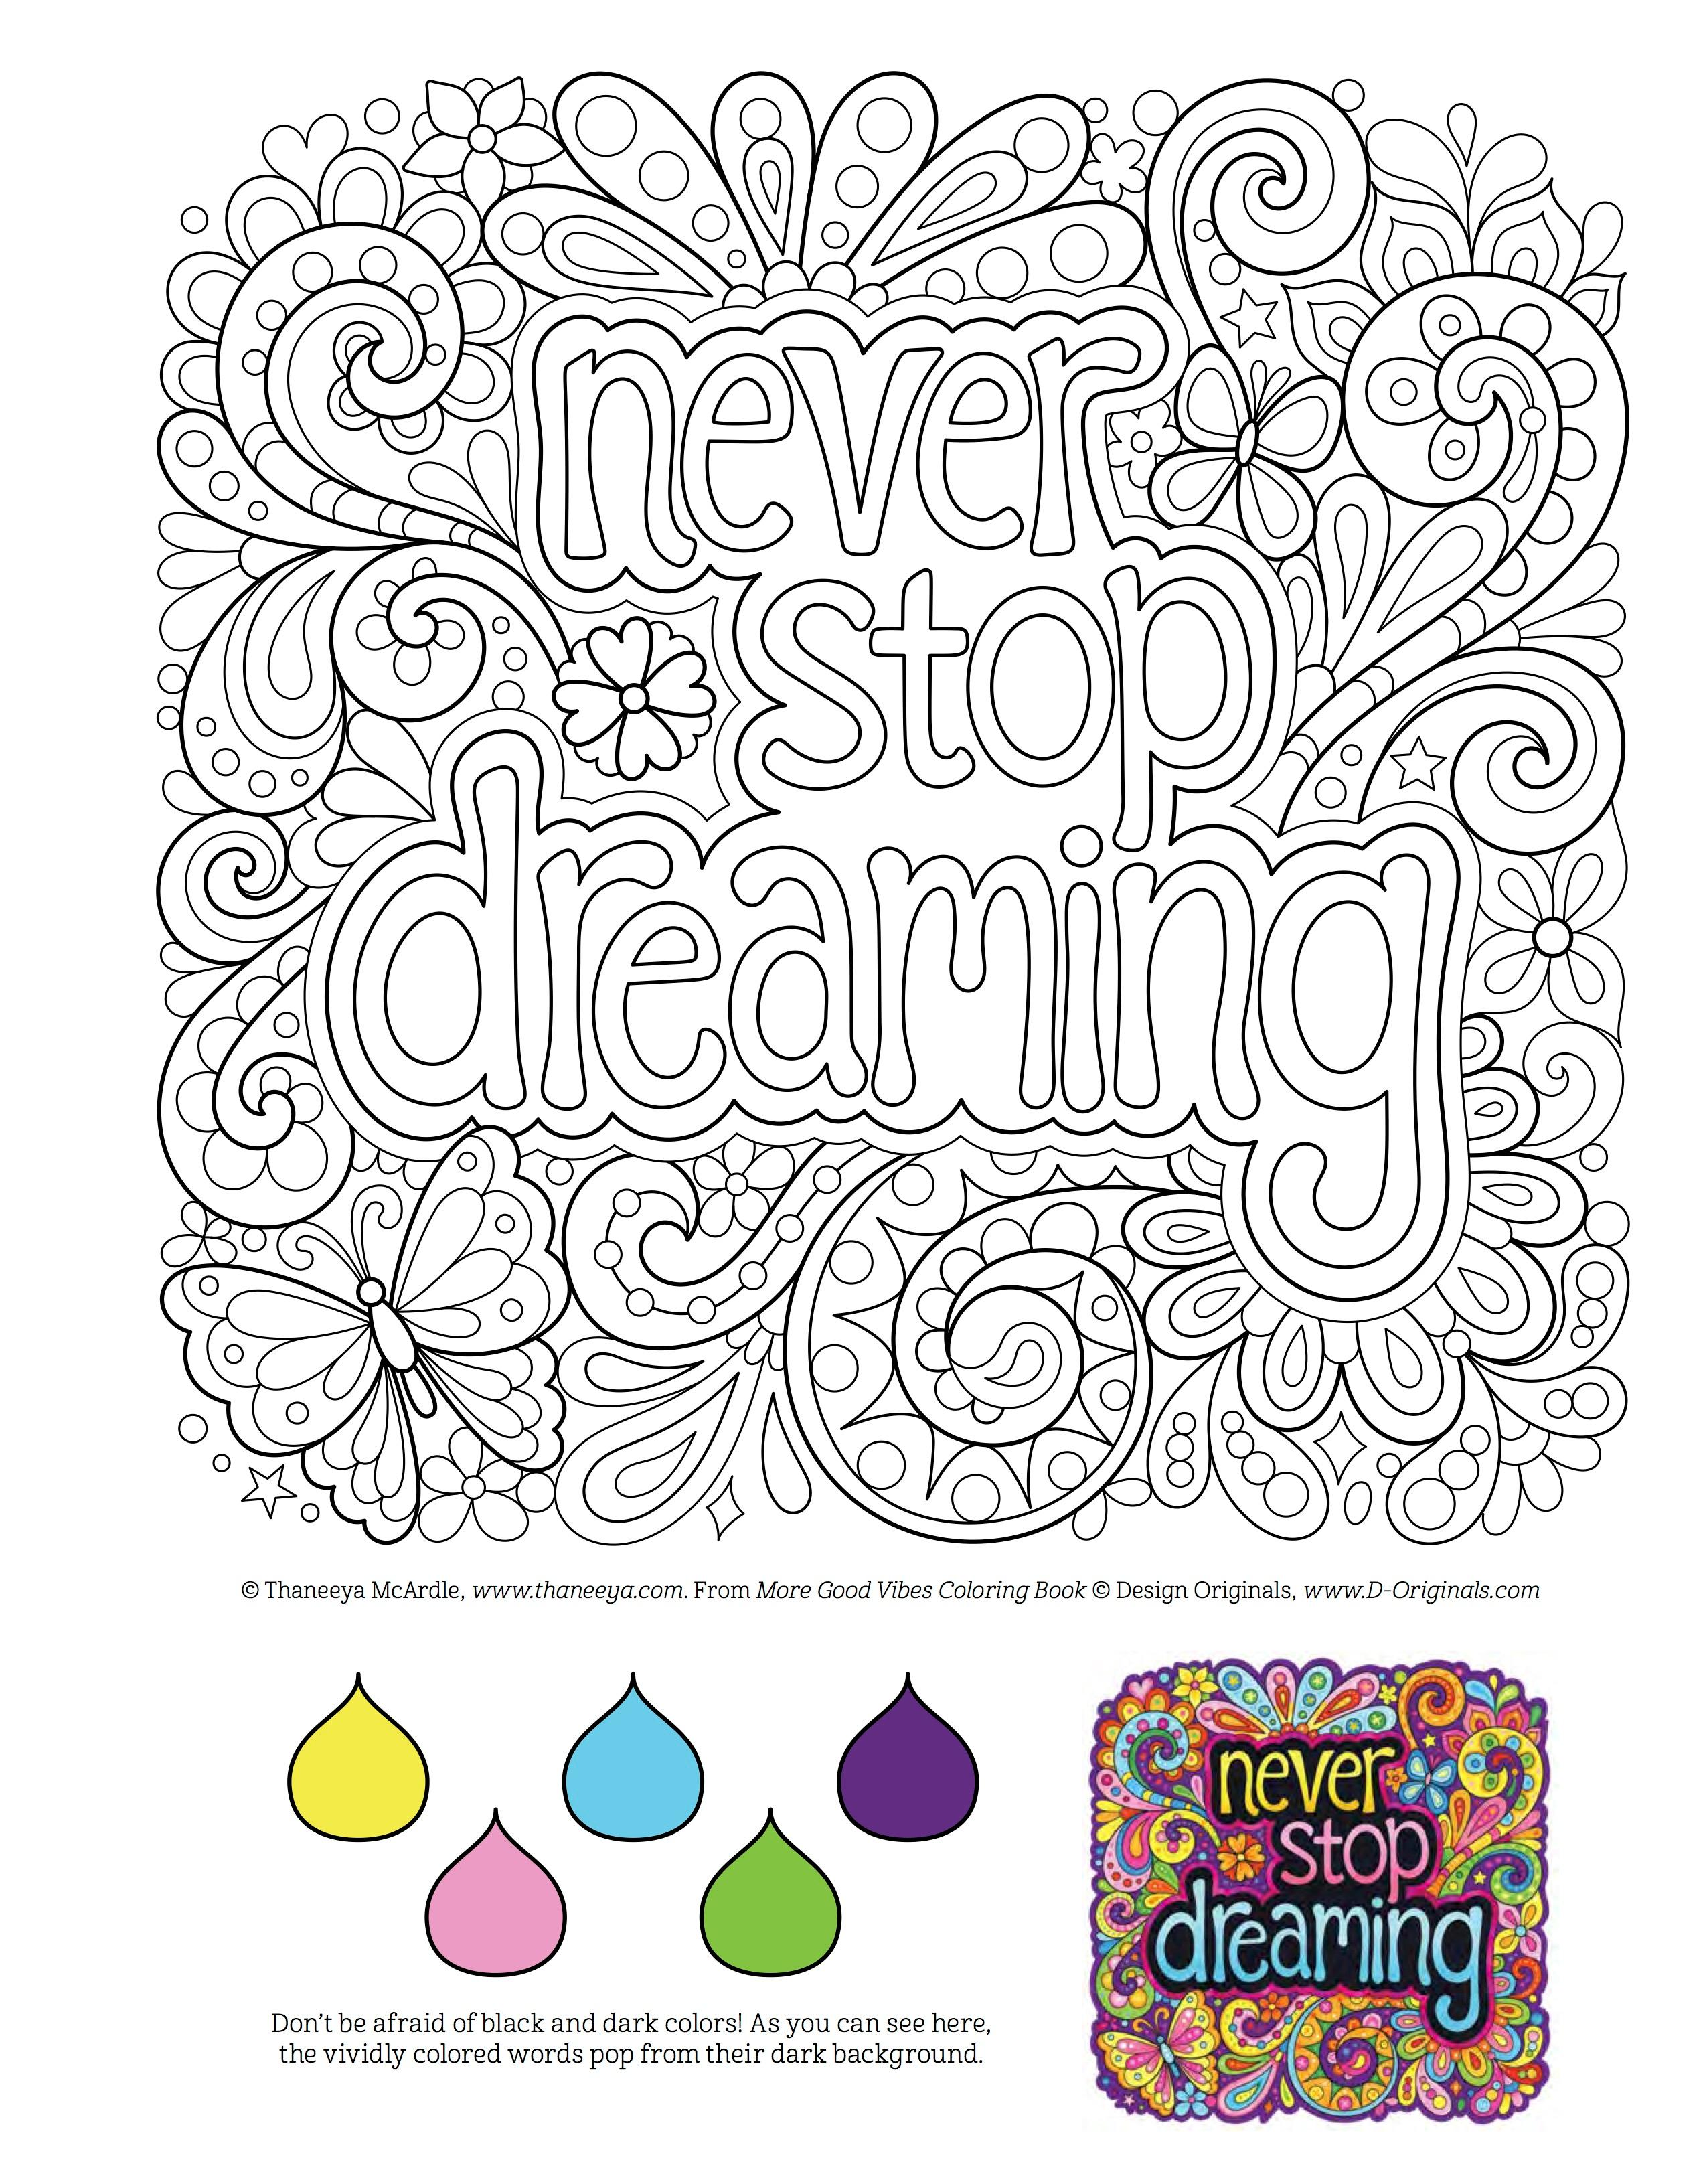 Amazon More Good Vibes Coloring Book Is Fun Design